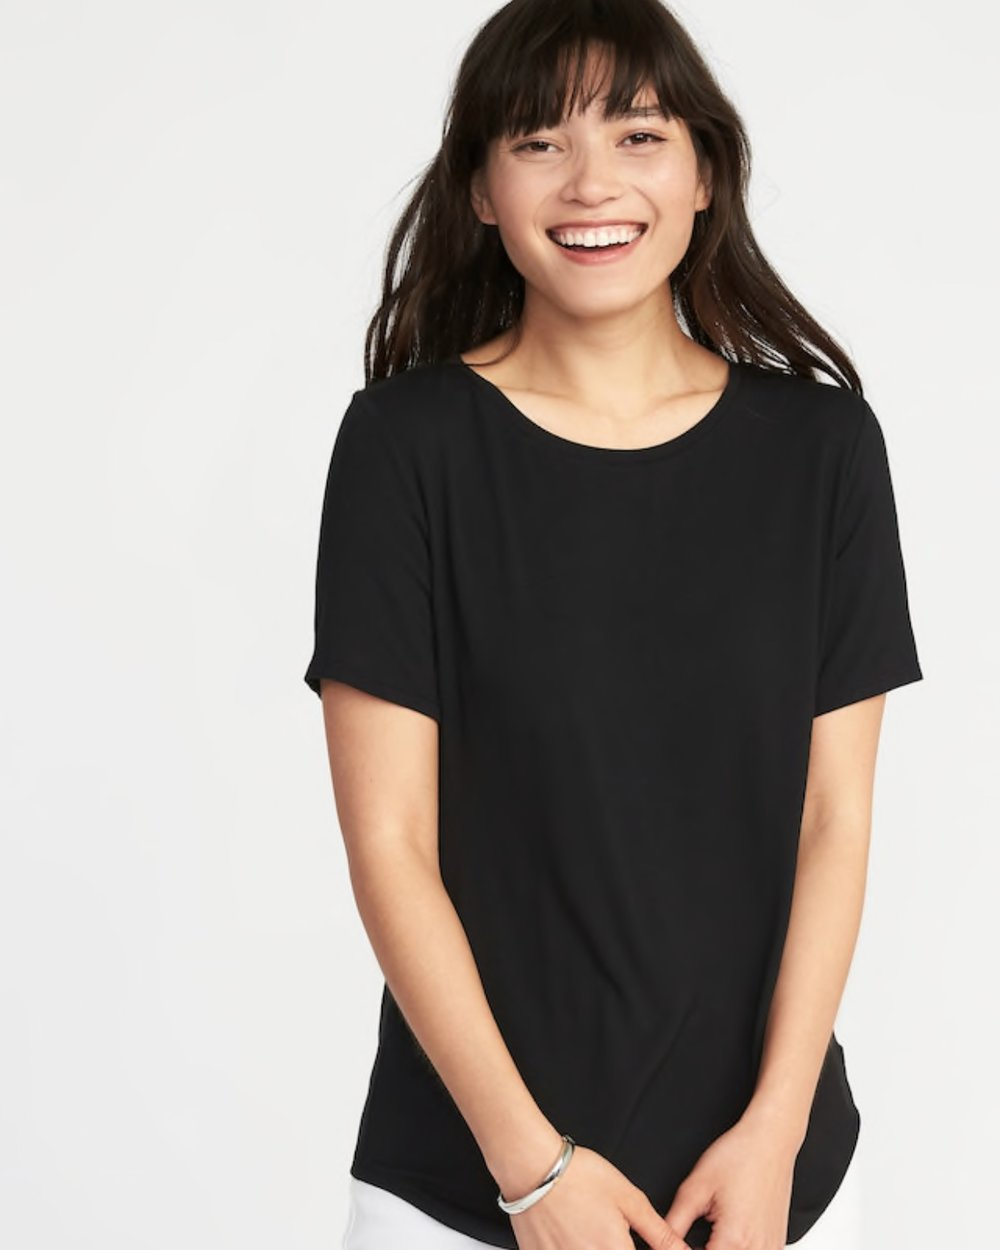 - Ok! I have found my new go to T-shirt! Here's what I love about them1. They are $8!2. Come in an array of colors and neck styles3. Are silky soft4. Aren't see through5. Are longer (YAS!)6. Loving the sleeve lengthA game changer t-shirt perfect for SummerFind it here.